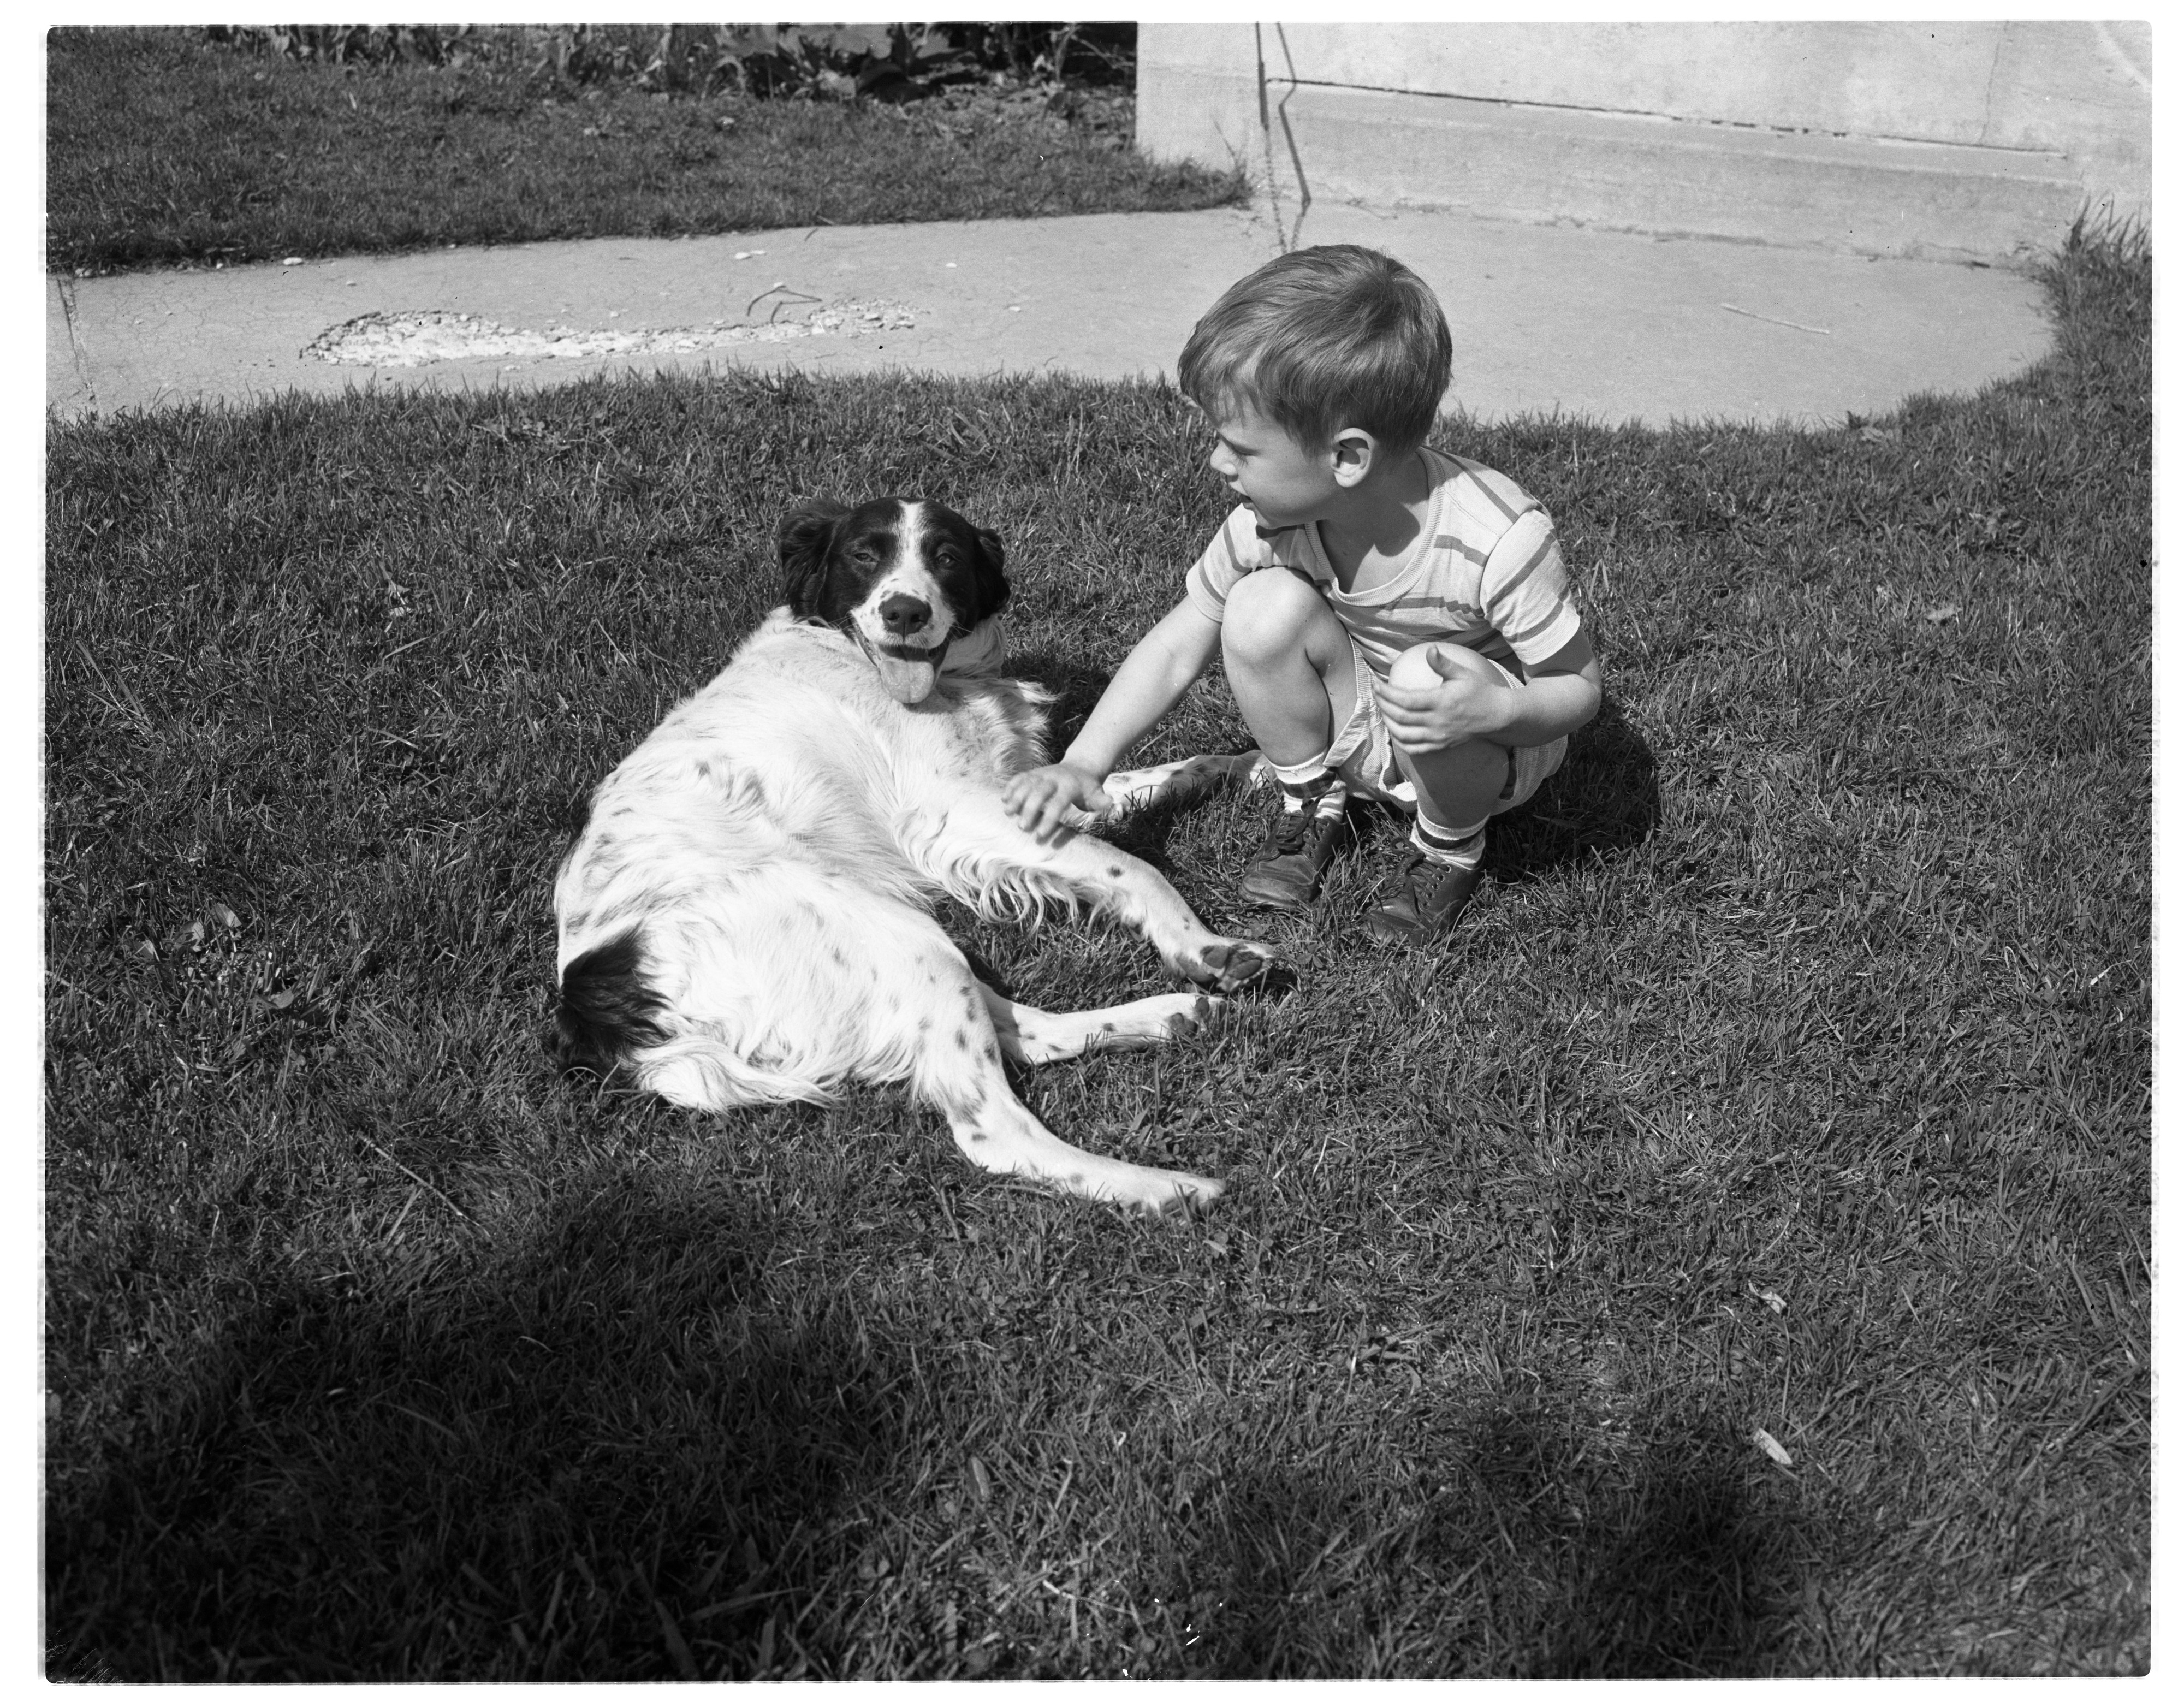 Image from Concerned Dog Owner Five-Year-Old David Johnson Writes Letter To Ann Arbor Police Department, May 1959